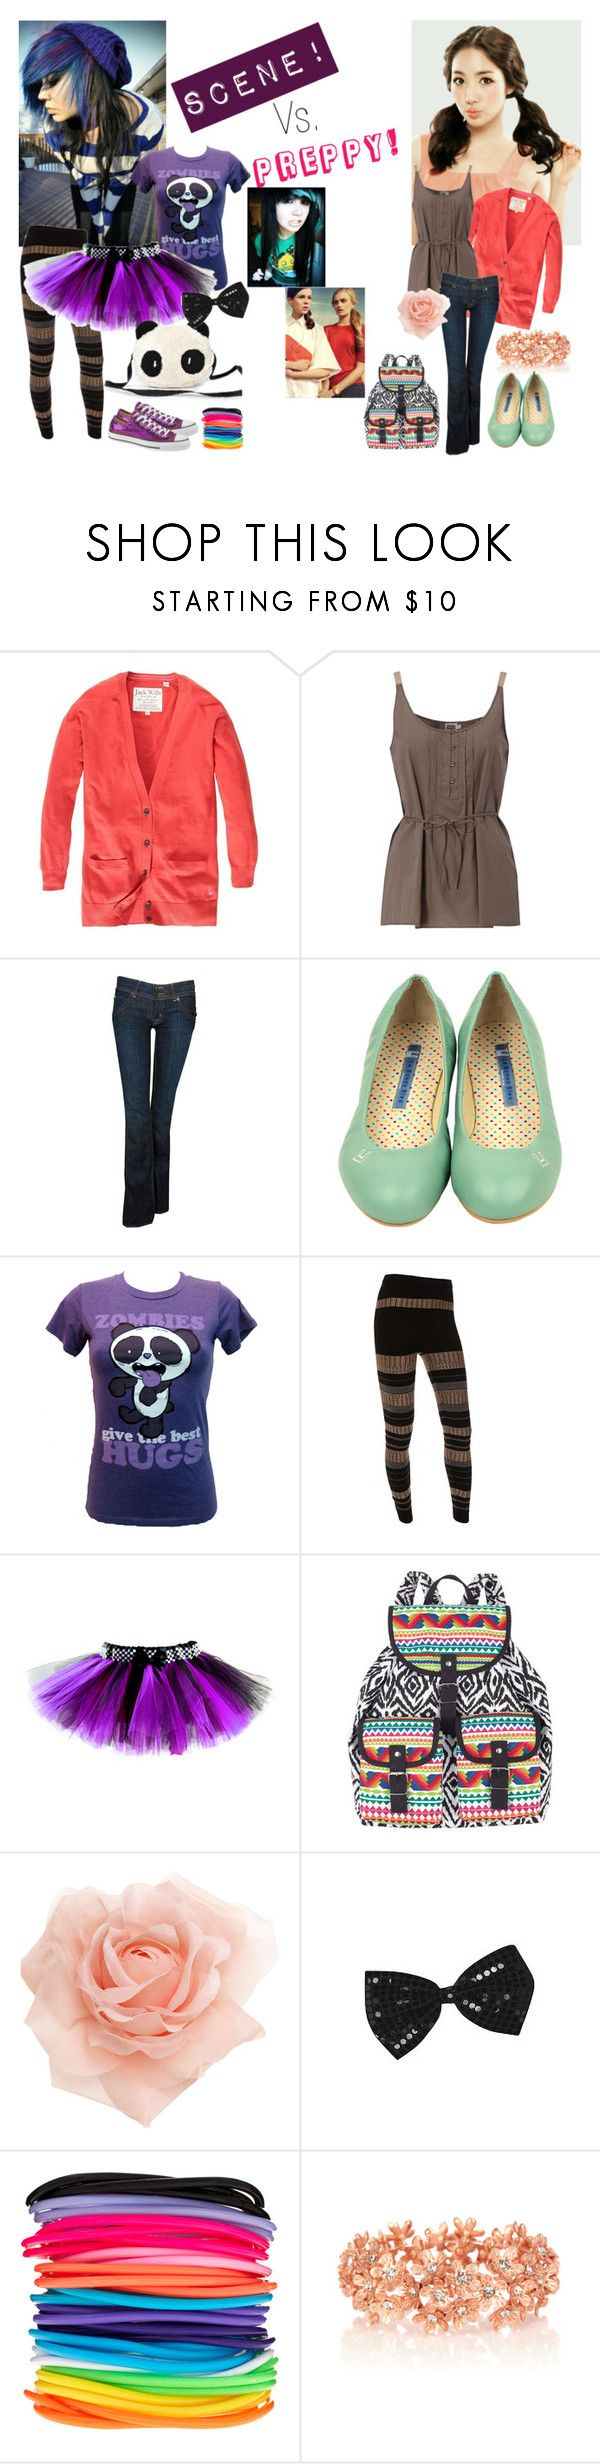 """""""Scene Vs. Preppy"""" by to-live-and-let-go ❤ liked on Polyvore featuring Jack Wills, Twist & Tango, Hudson Jeans, Goodie Two Sleeves, Edun, Converse, Panda, Monsoon, ASOS and Oasis"""